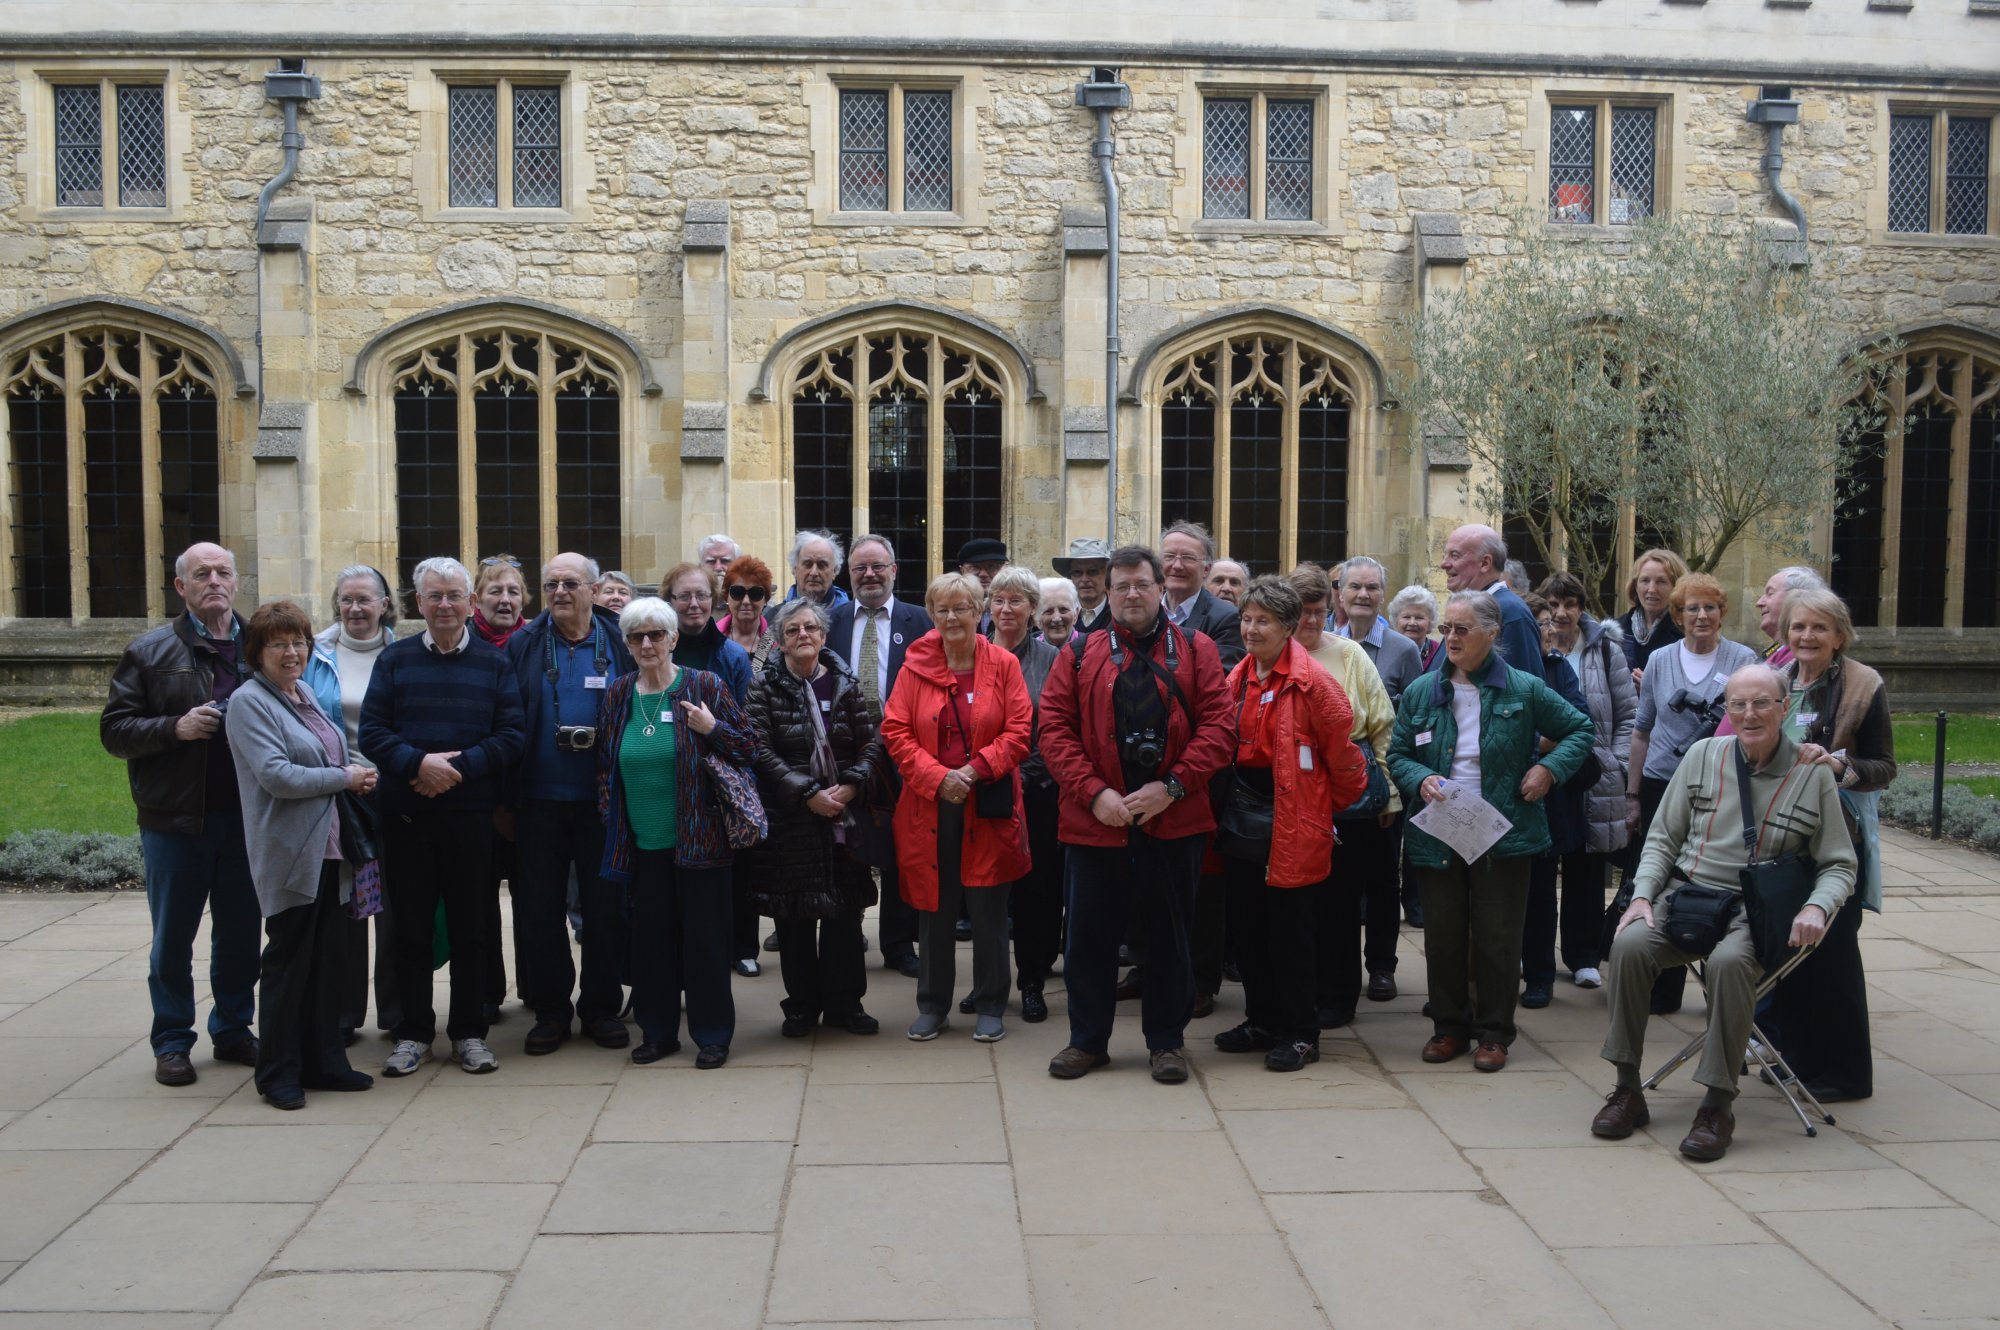 Group in Courtyard, Christchurch College, Oxford